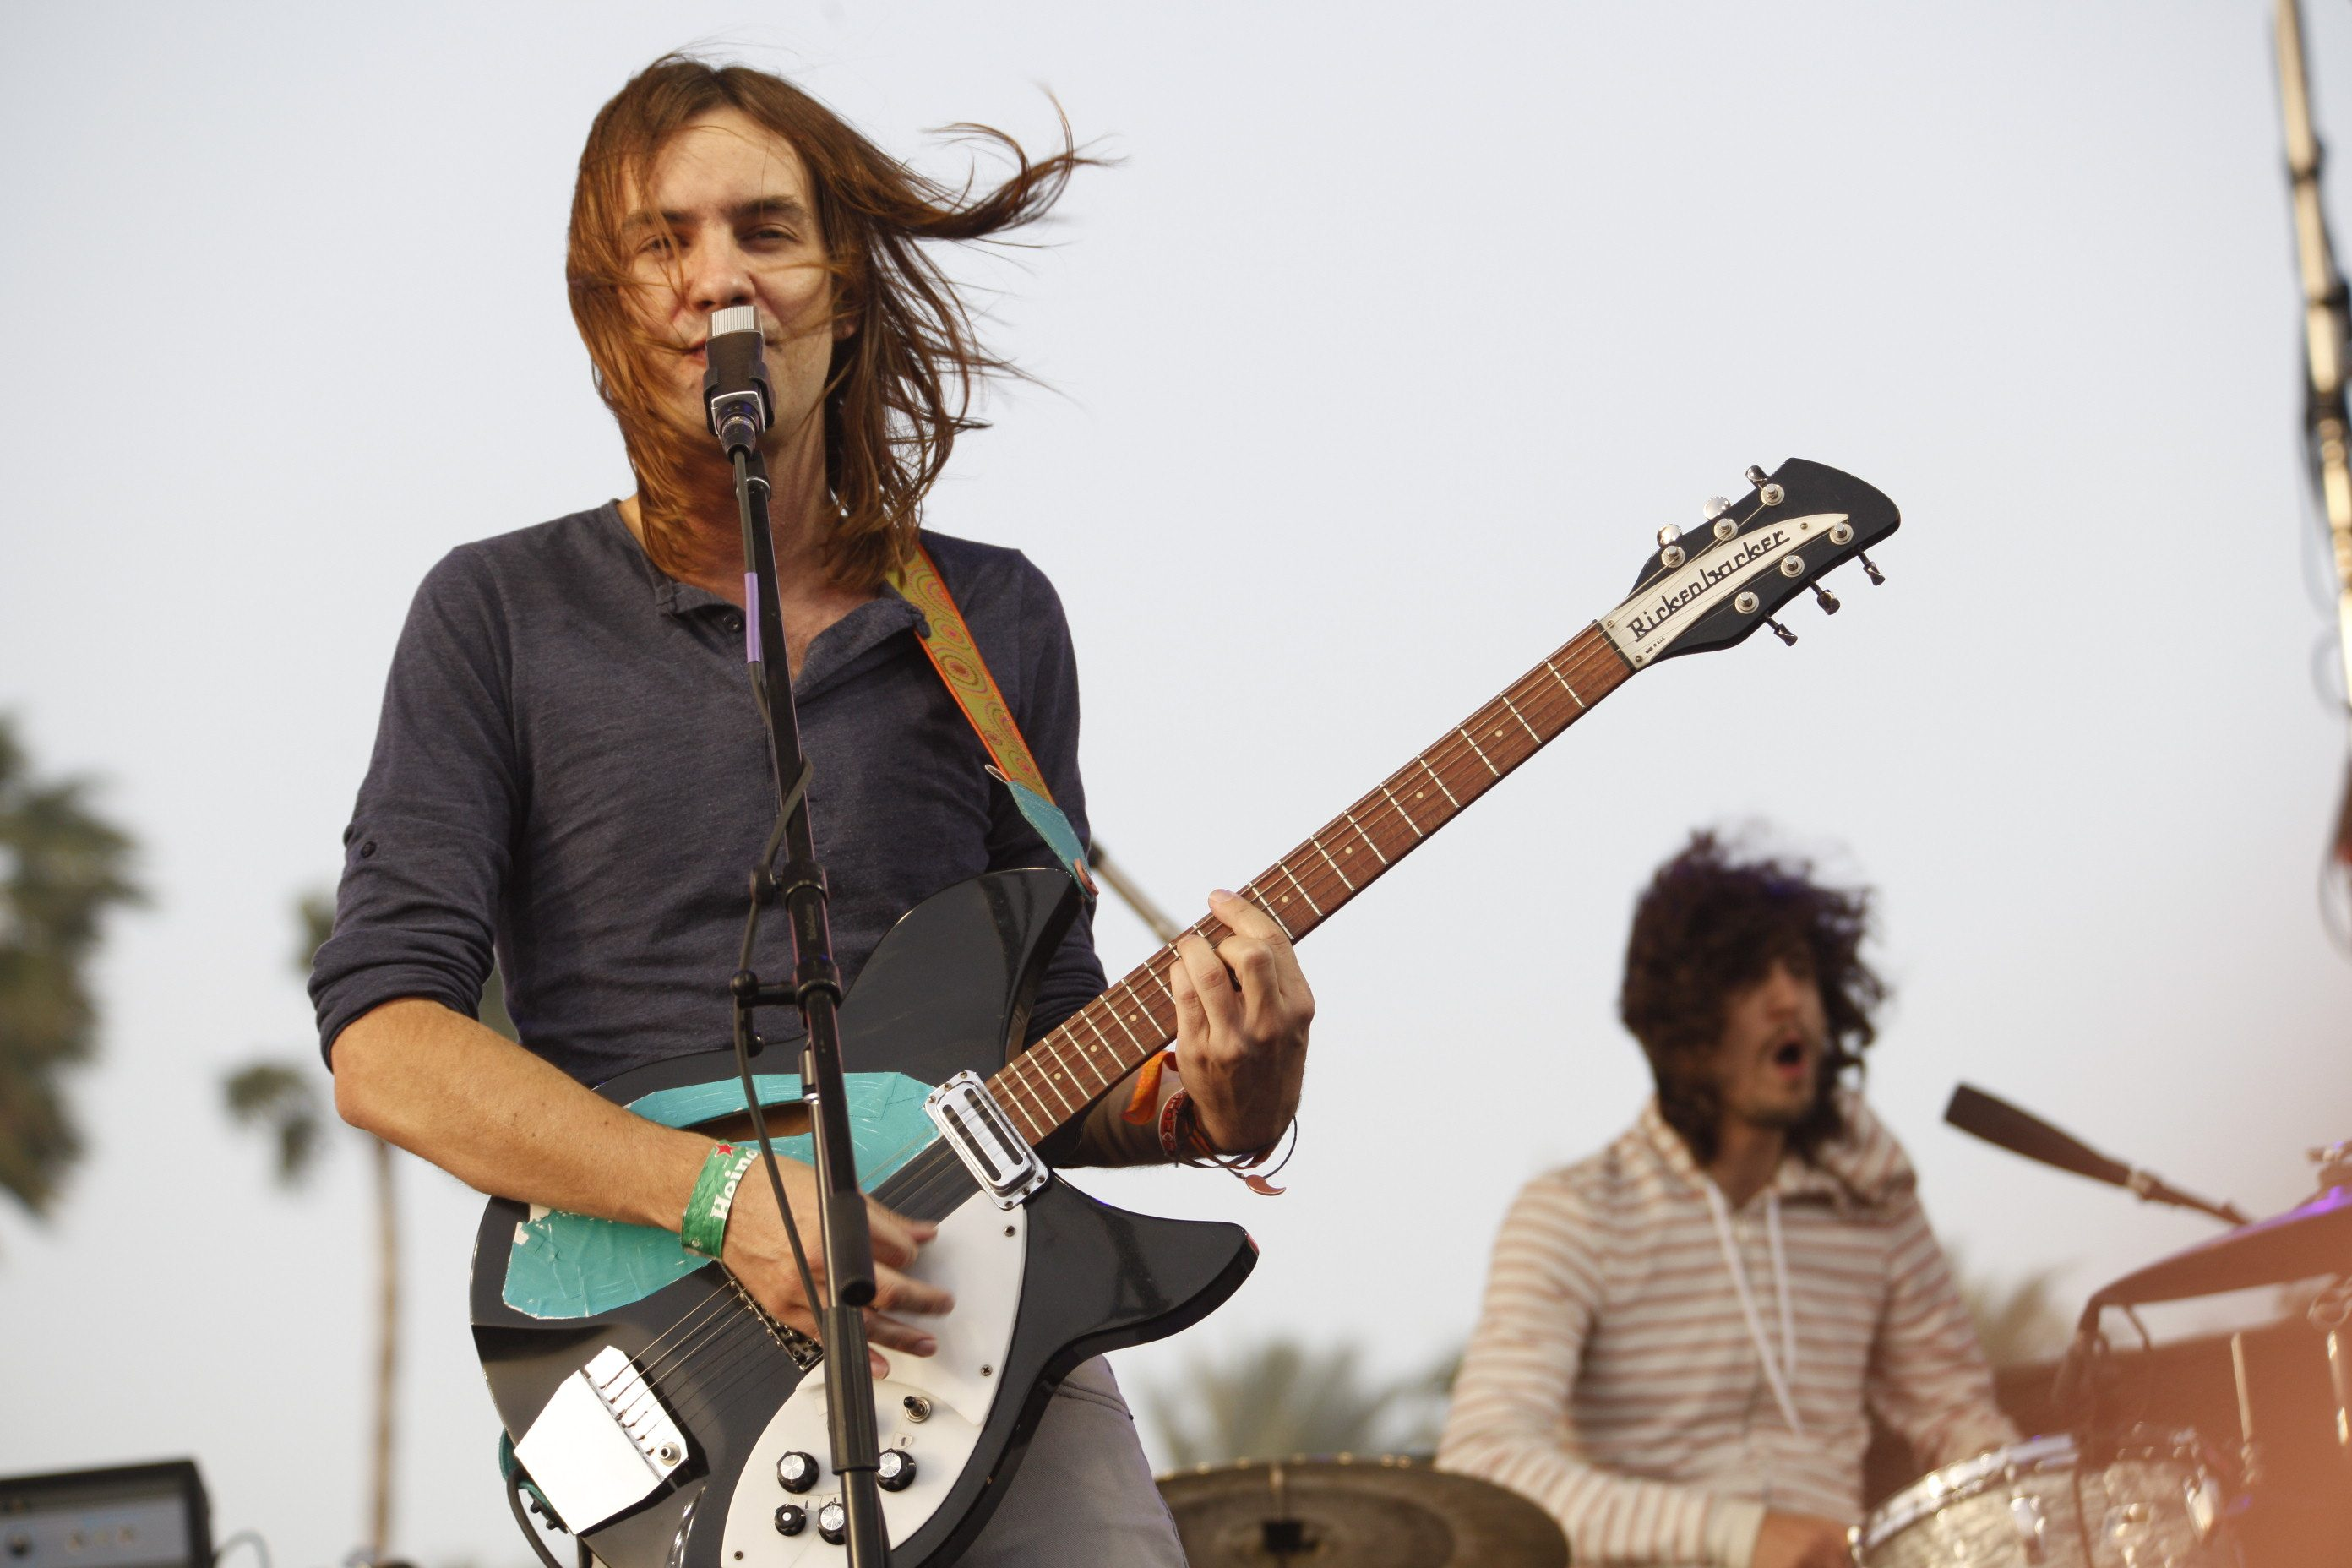 Kevin Parker Expects Tame Impala To Release New Album Within the Next Year